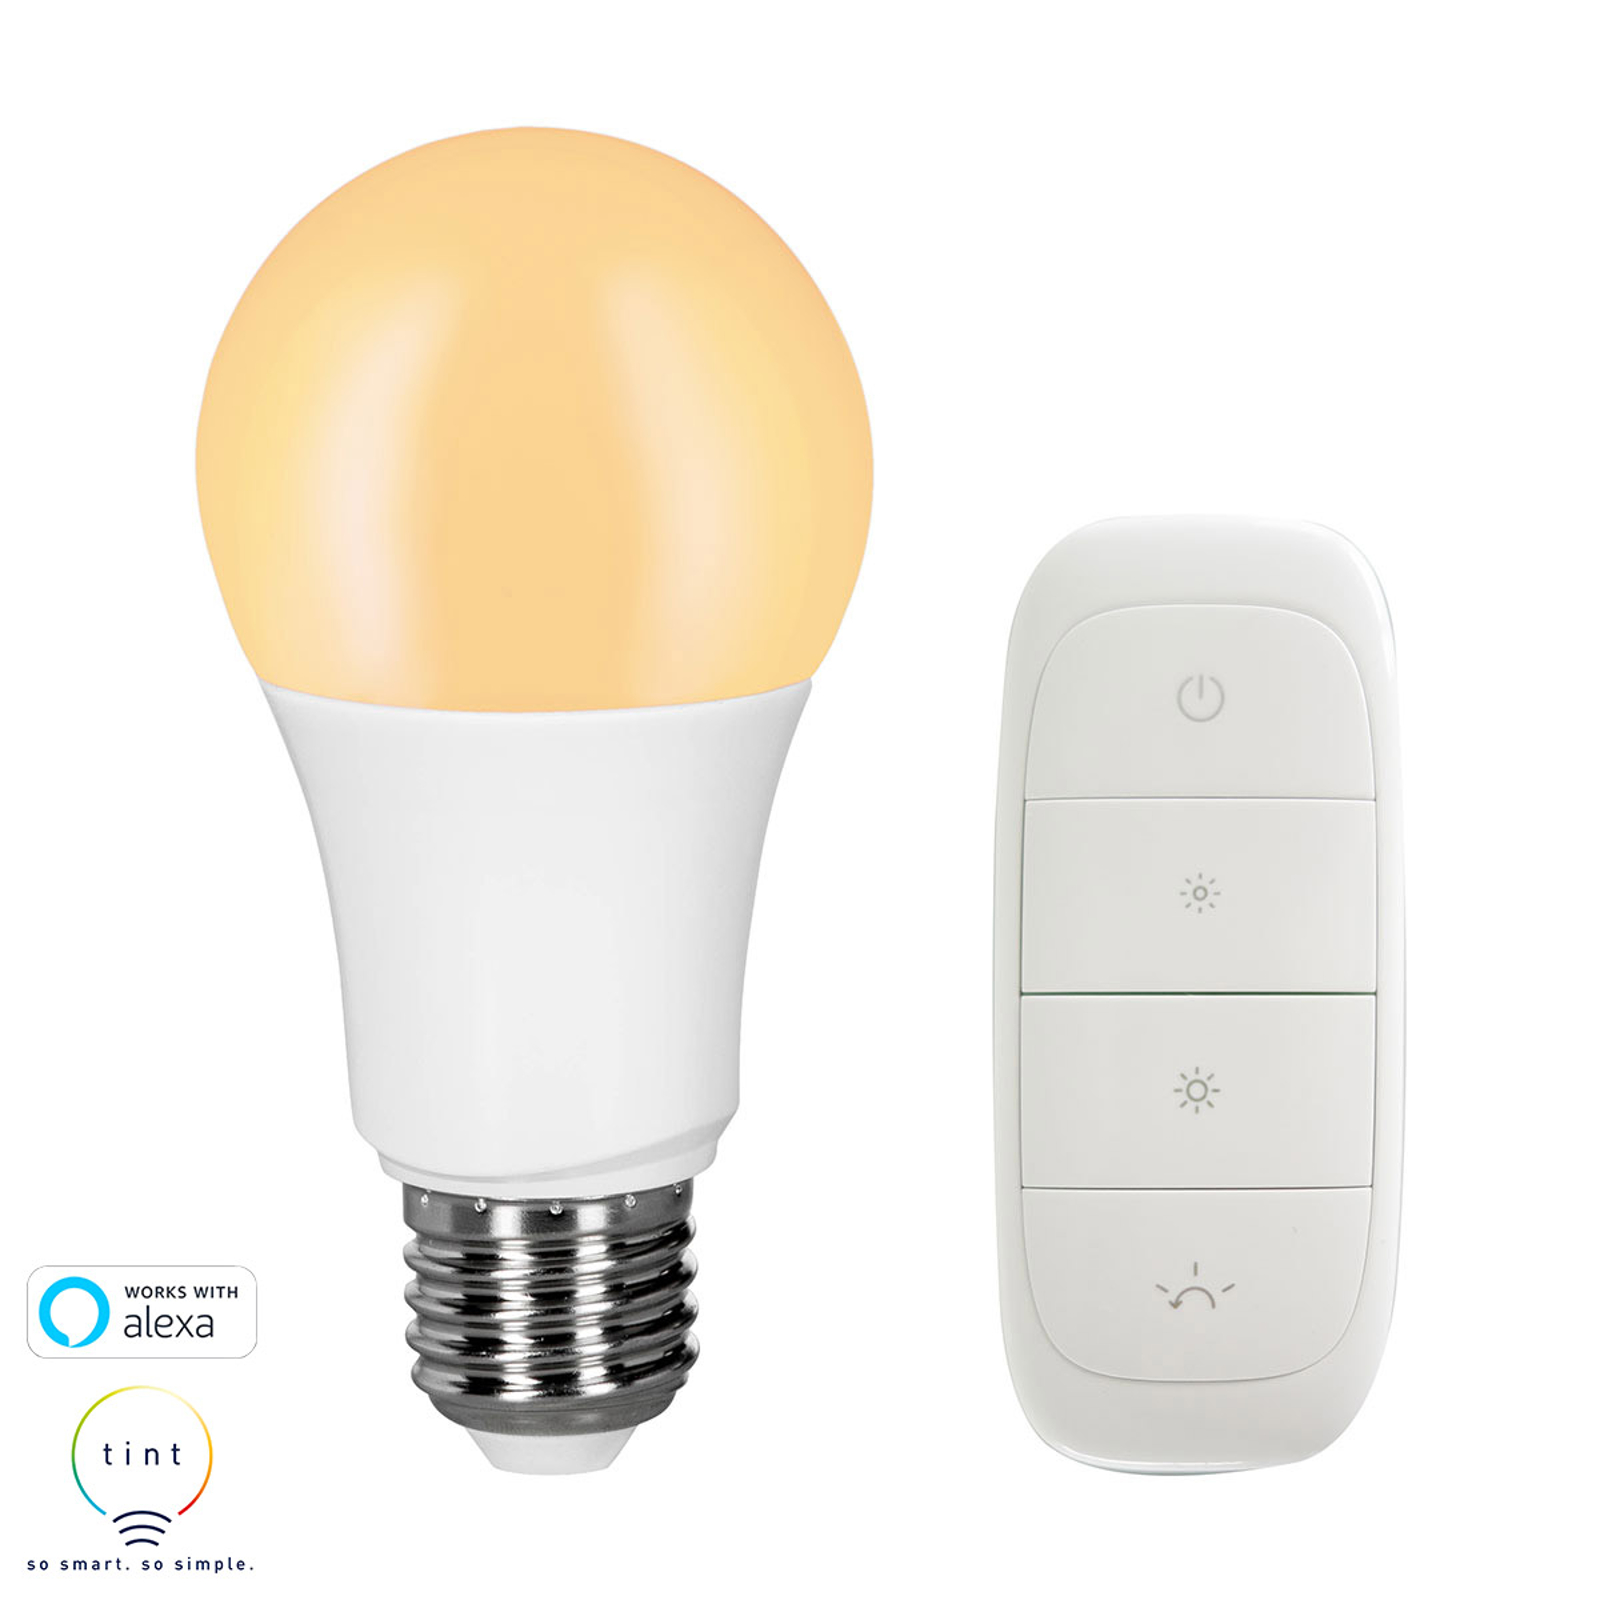 Müller Licht tint dimming LED E27 9W+dimmer